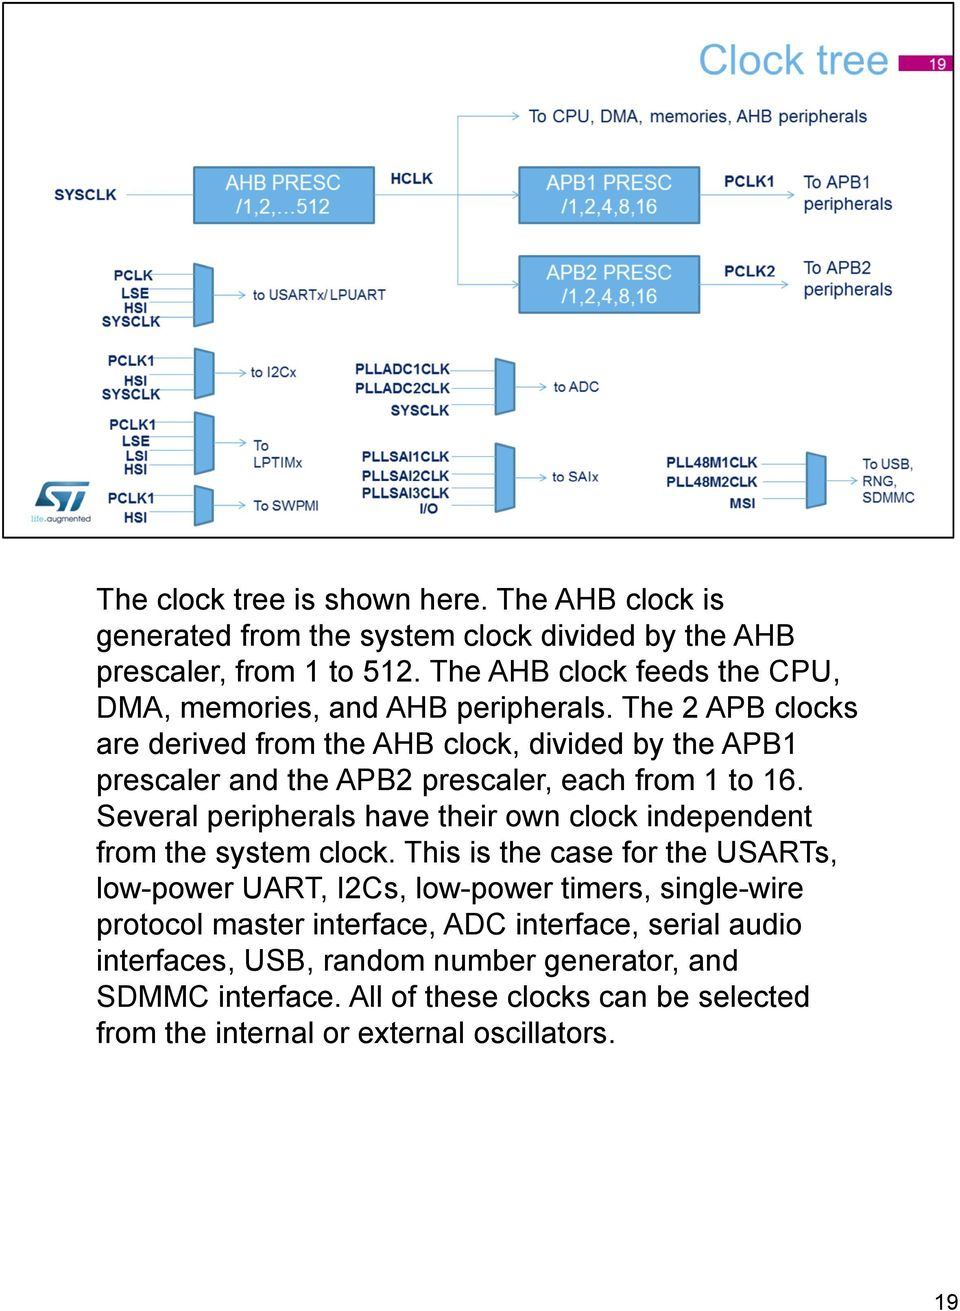 The 2 APB clocks are derived from the AHB clock, divided by the APB1 prescaler and the APB2 prescaler, each from 1 to 16.